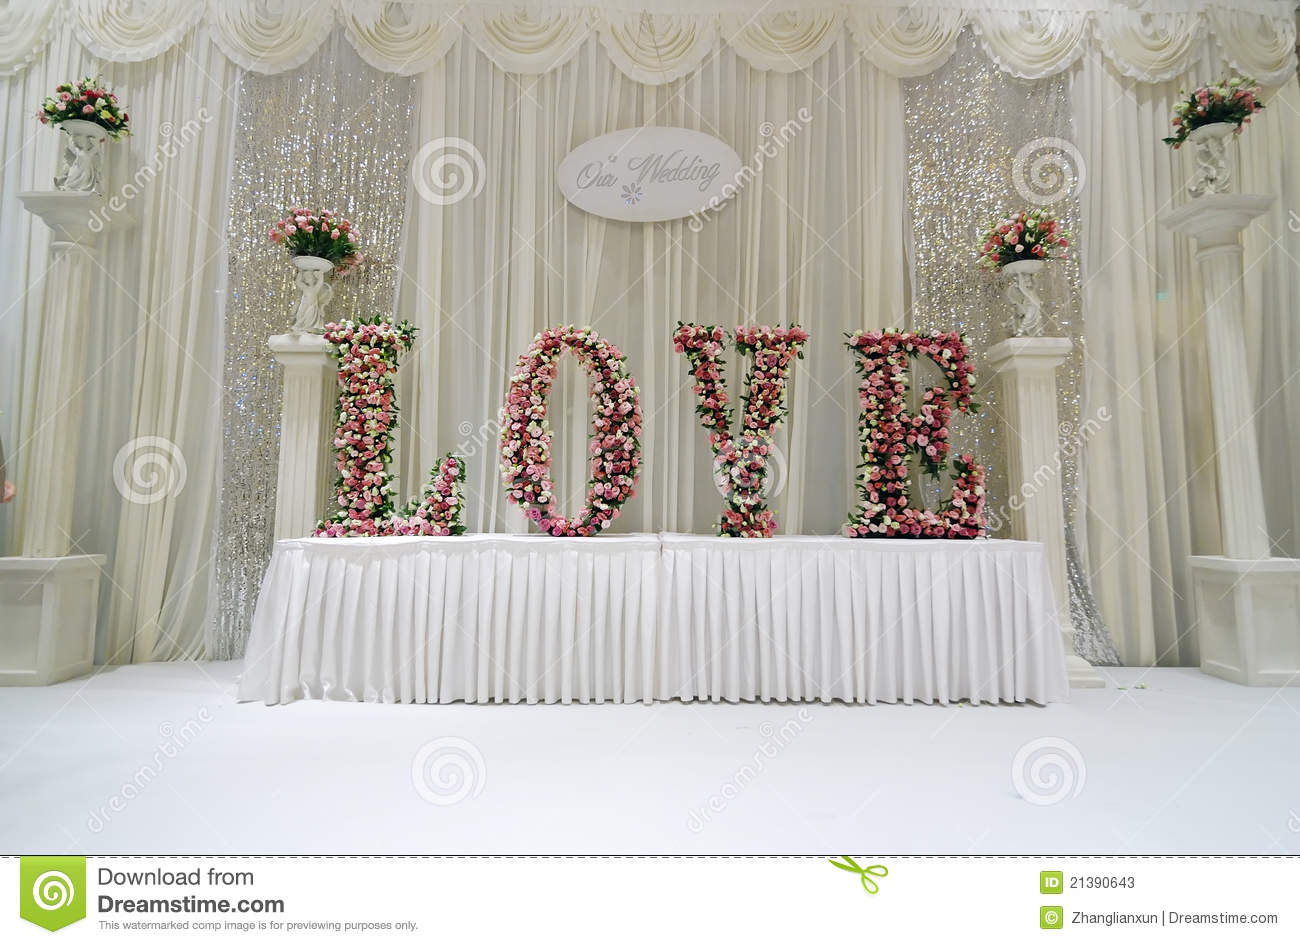 Wedding stage stock image image of designing floral 21390643 wedding stage junglespirit Choice Image